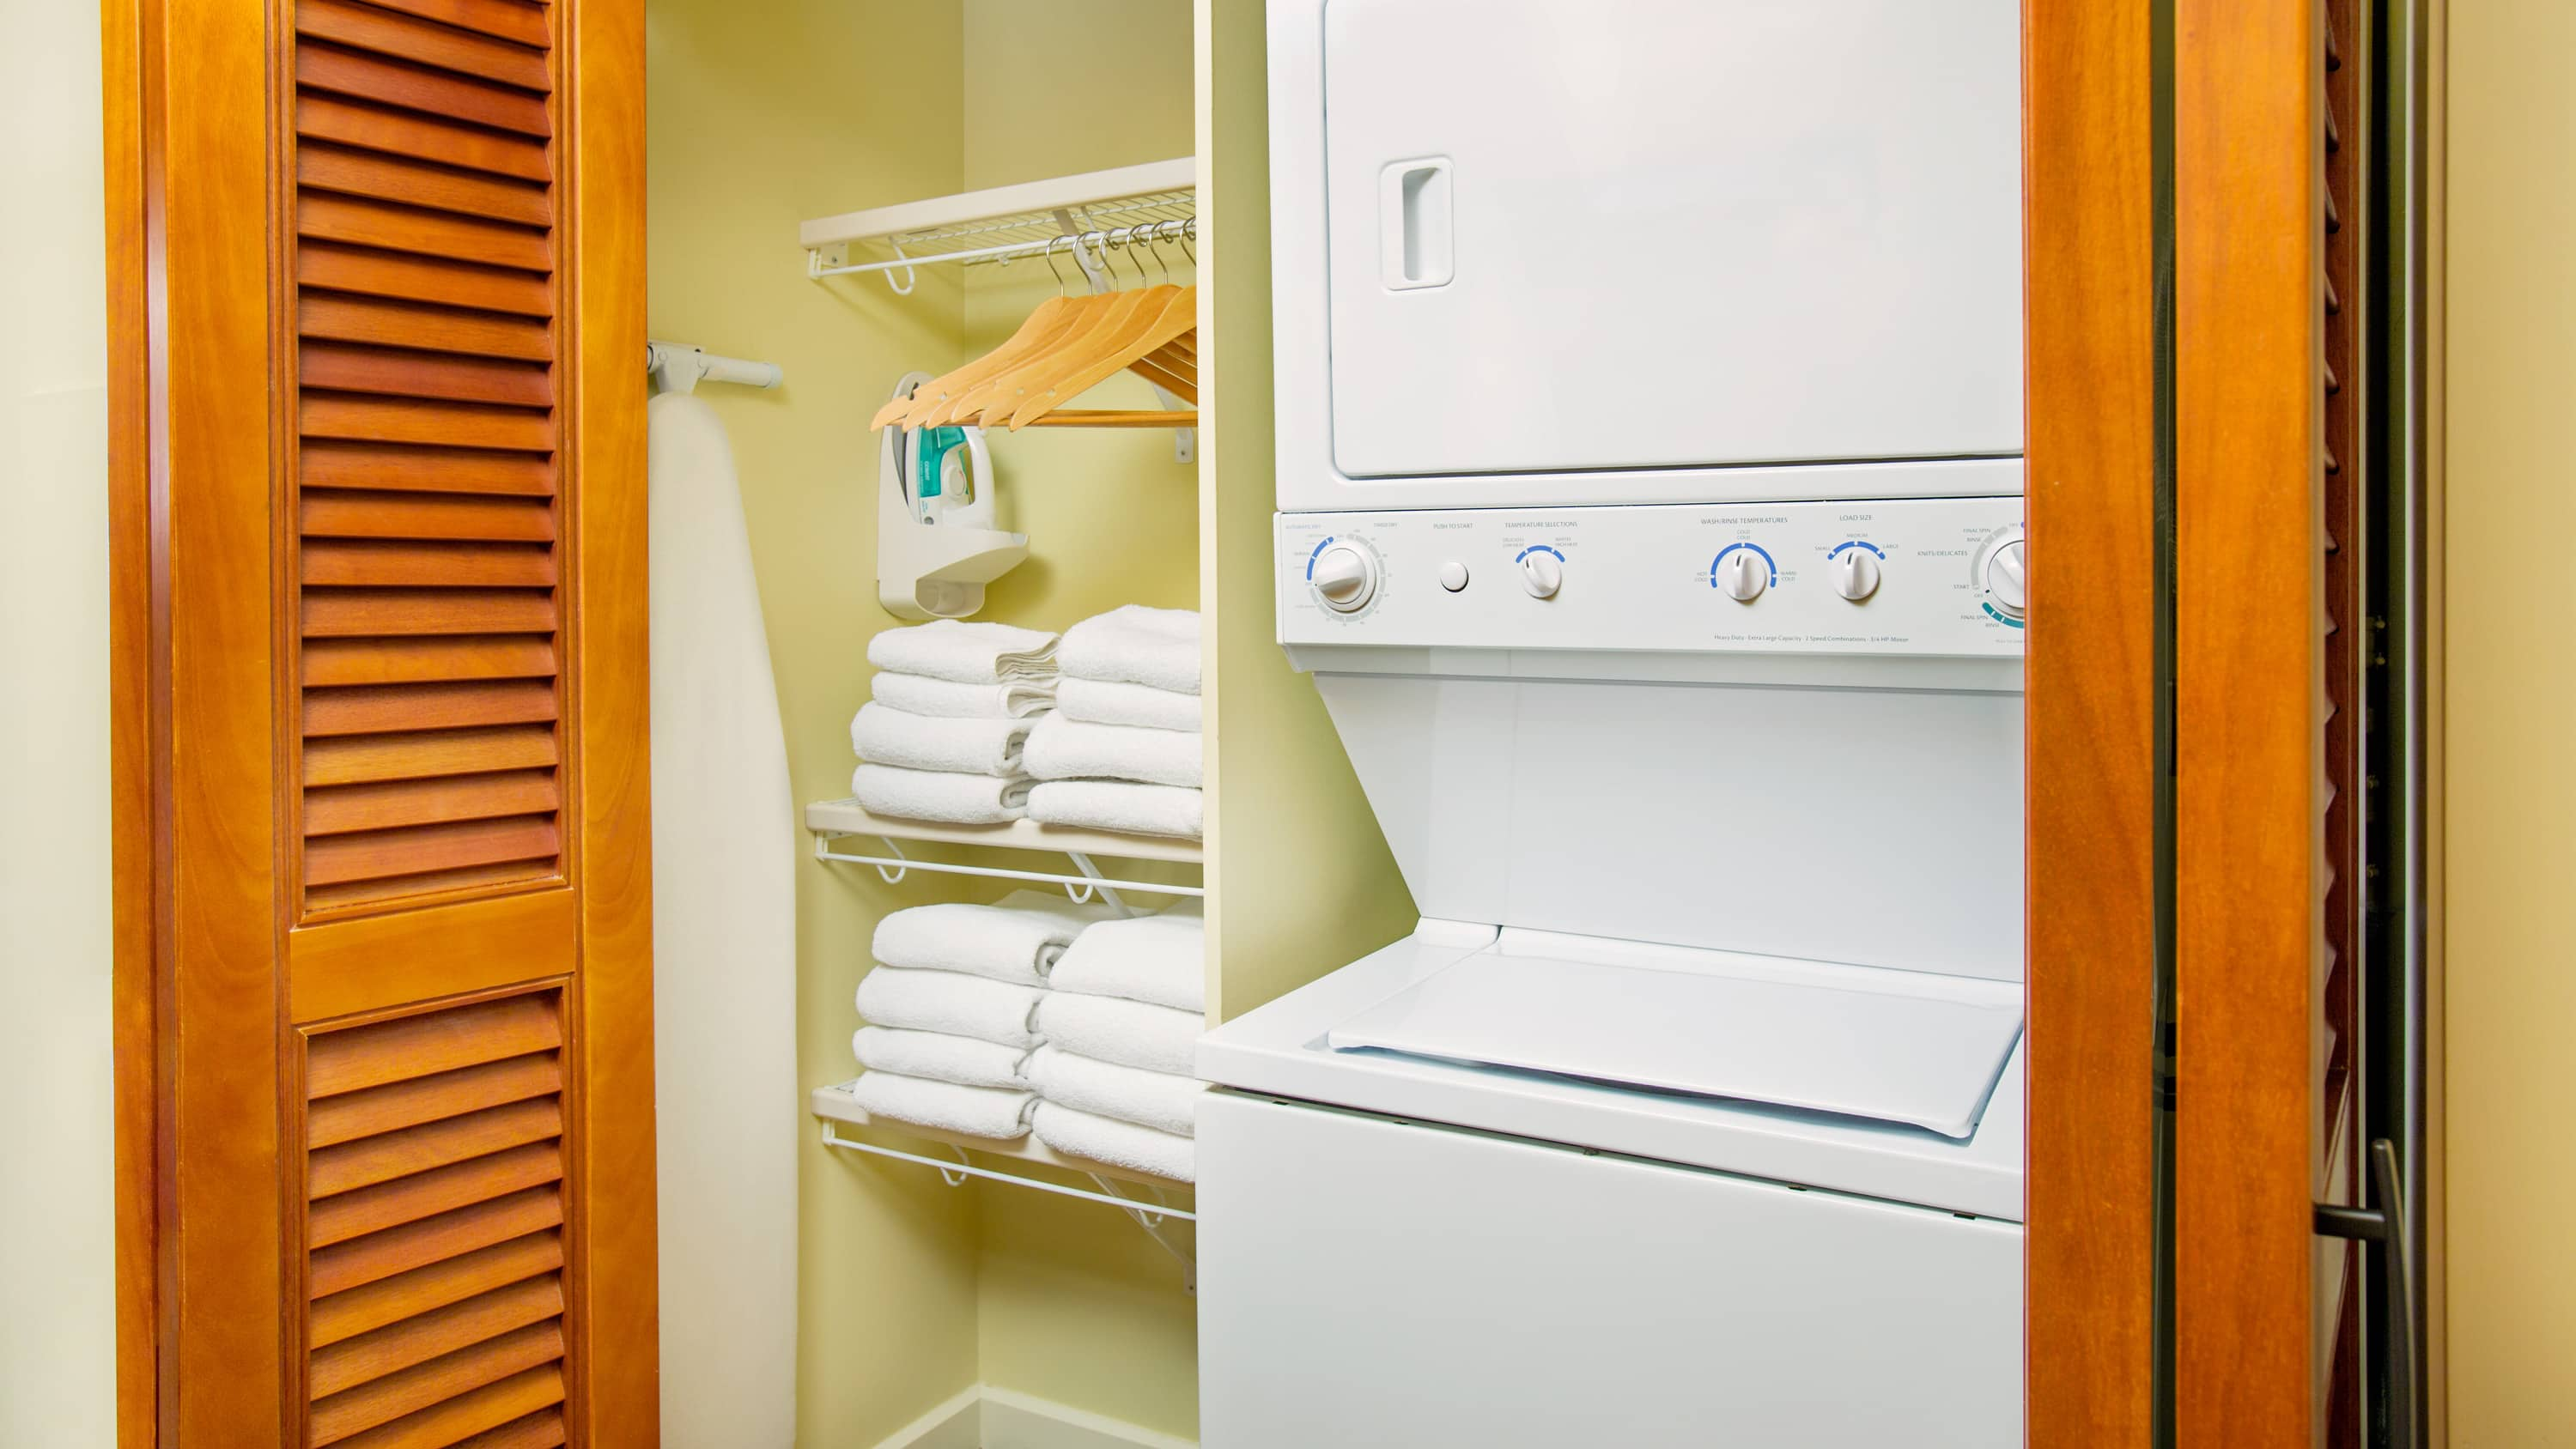 A washer and dryer near shelves with clothes hangers and towels